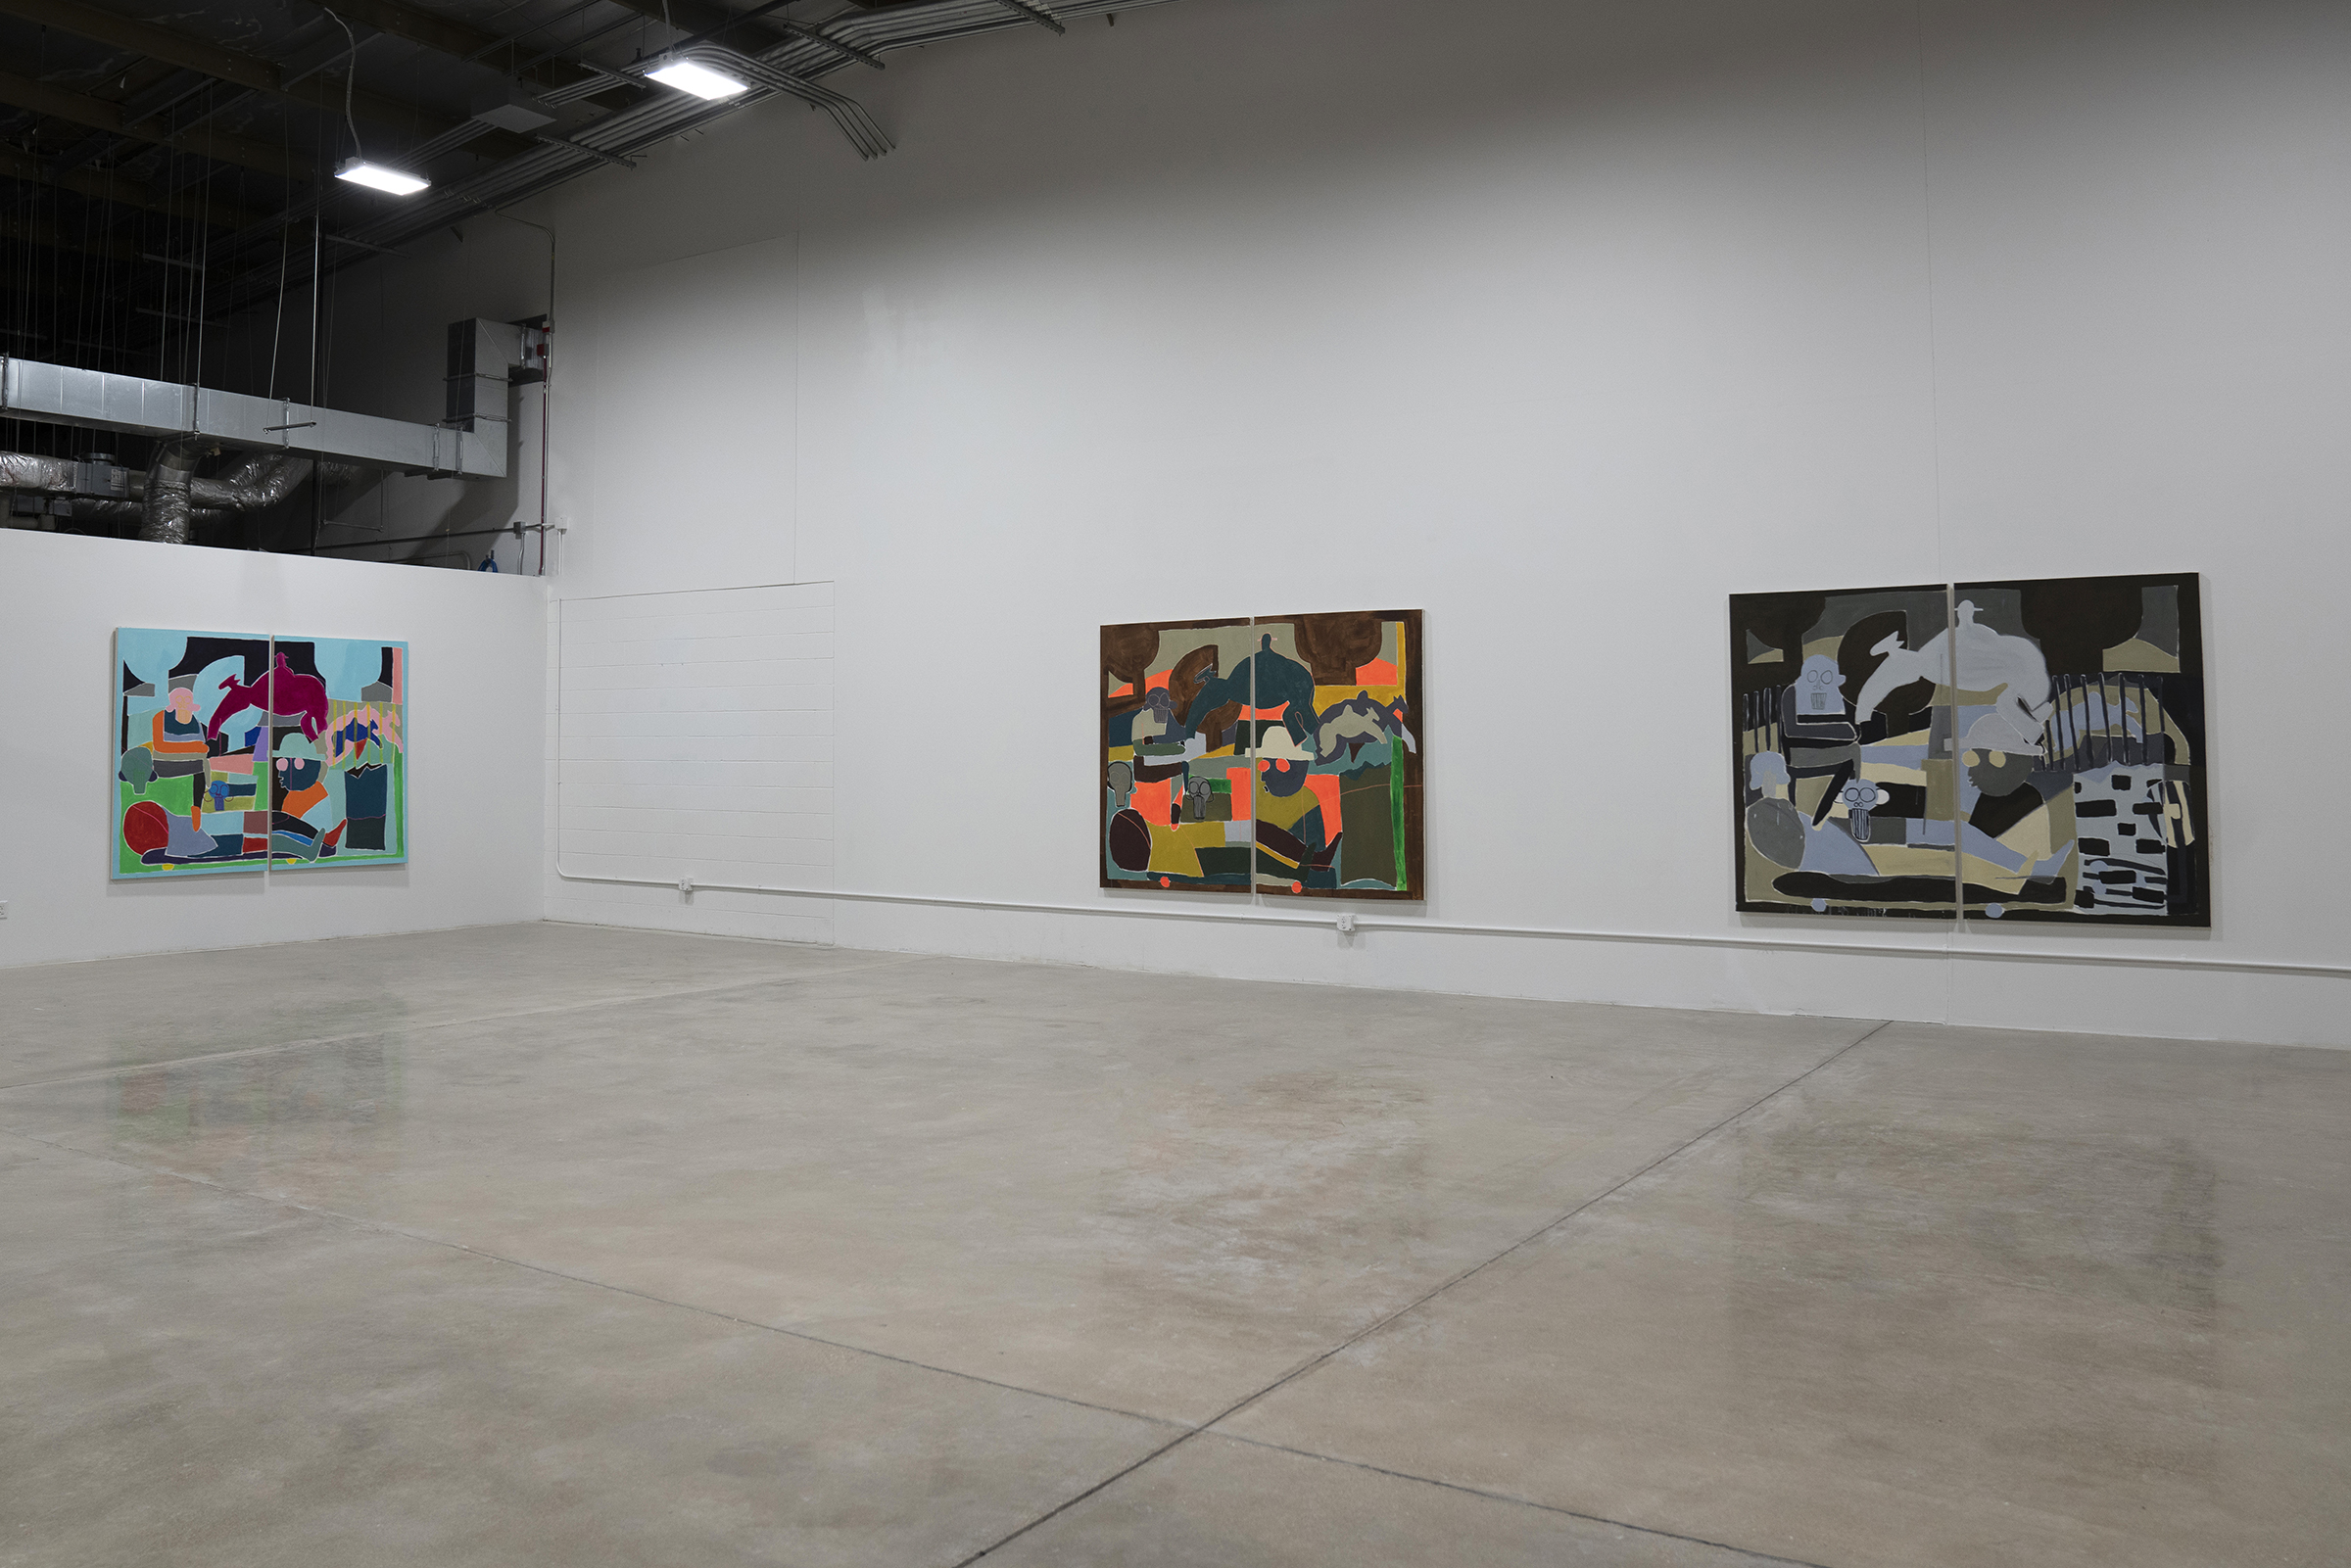 Installation view of Self-Portrait Within Parallel Plans Master of Fine Arts Exhibition by Taj Matumbi at the Art Lofts Gallery, University of Wisconsin-Madison.